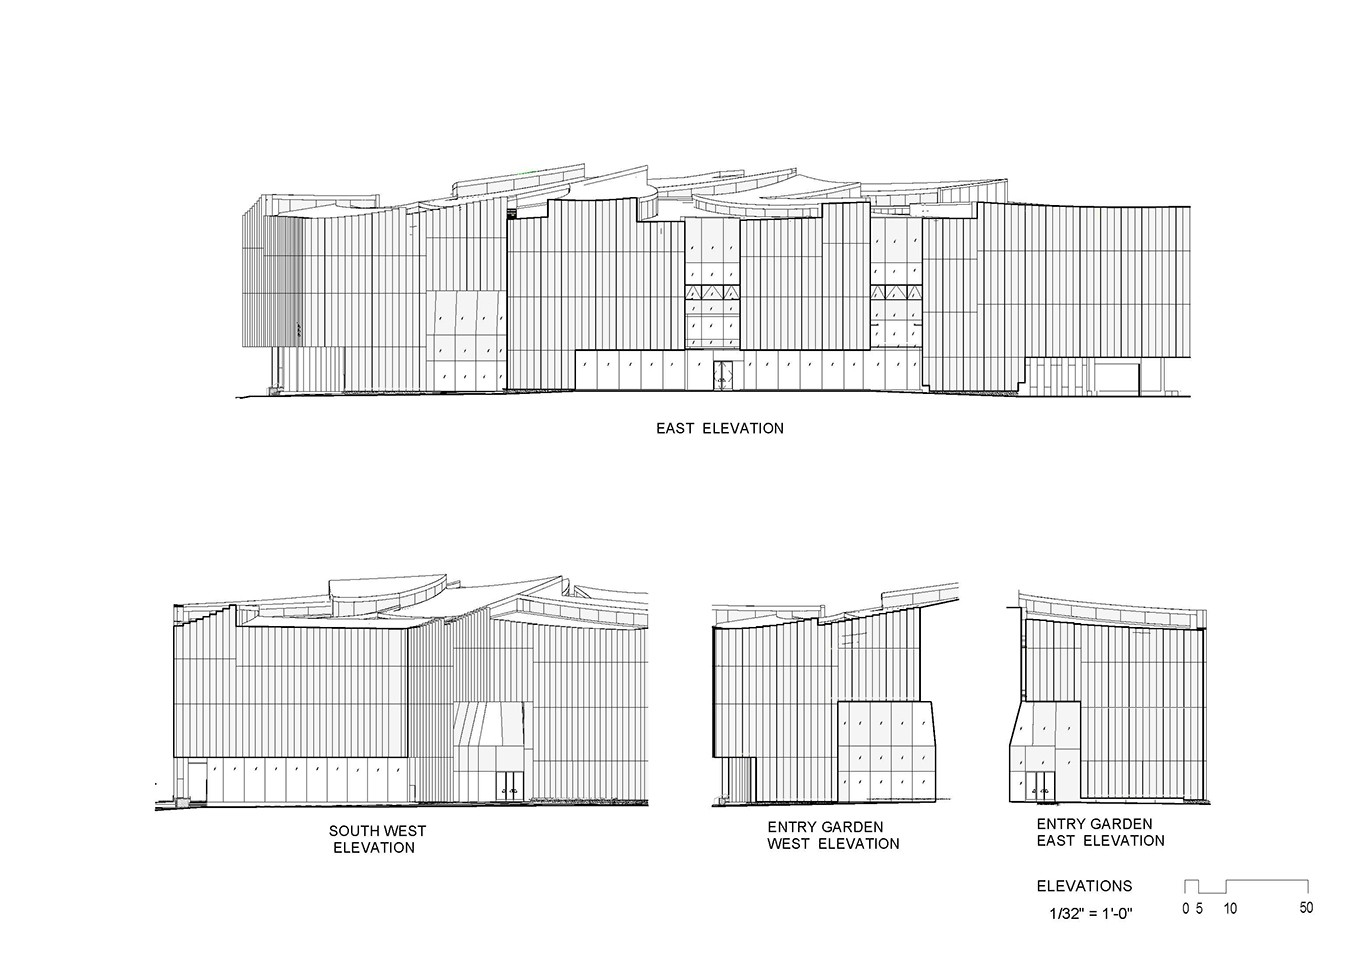 https://stevenholl.sfo2.digitaloceanspaces.com/uploads/projects/project-images/elevation1.jpg